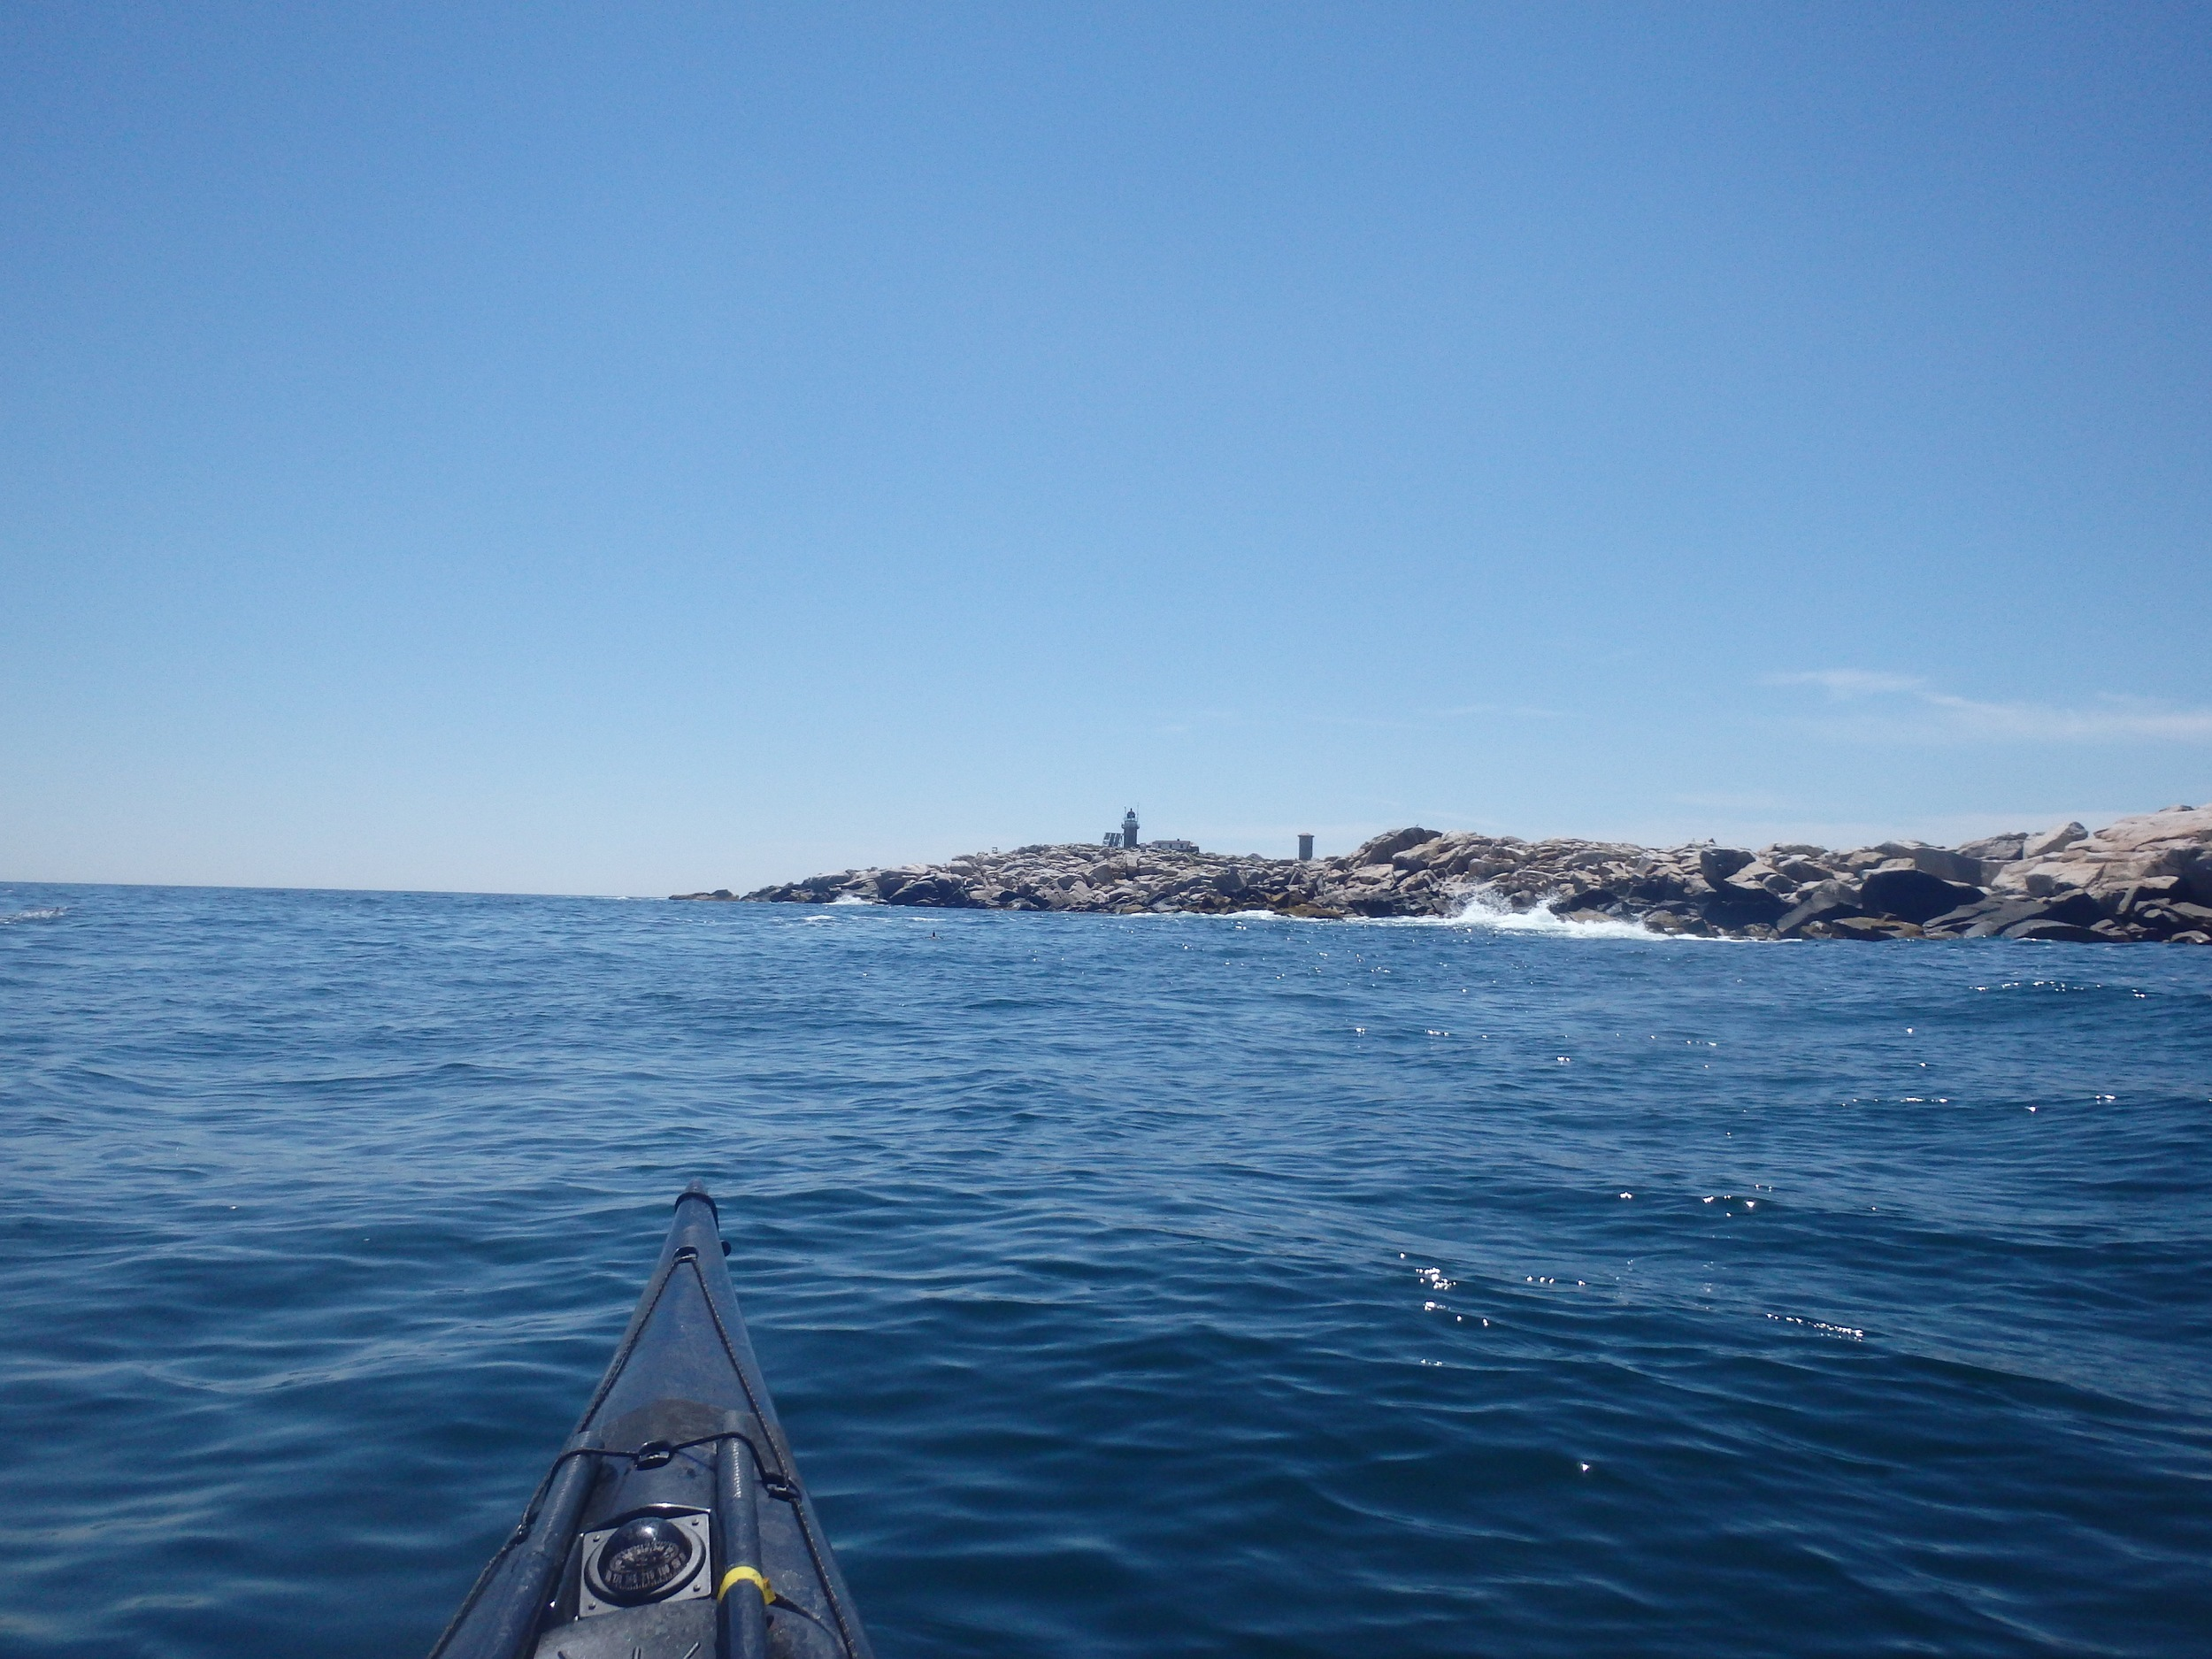 Headed down the western shore of the Rock